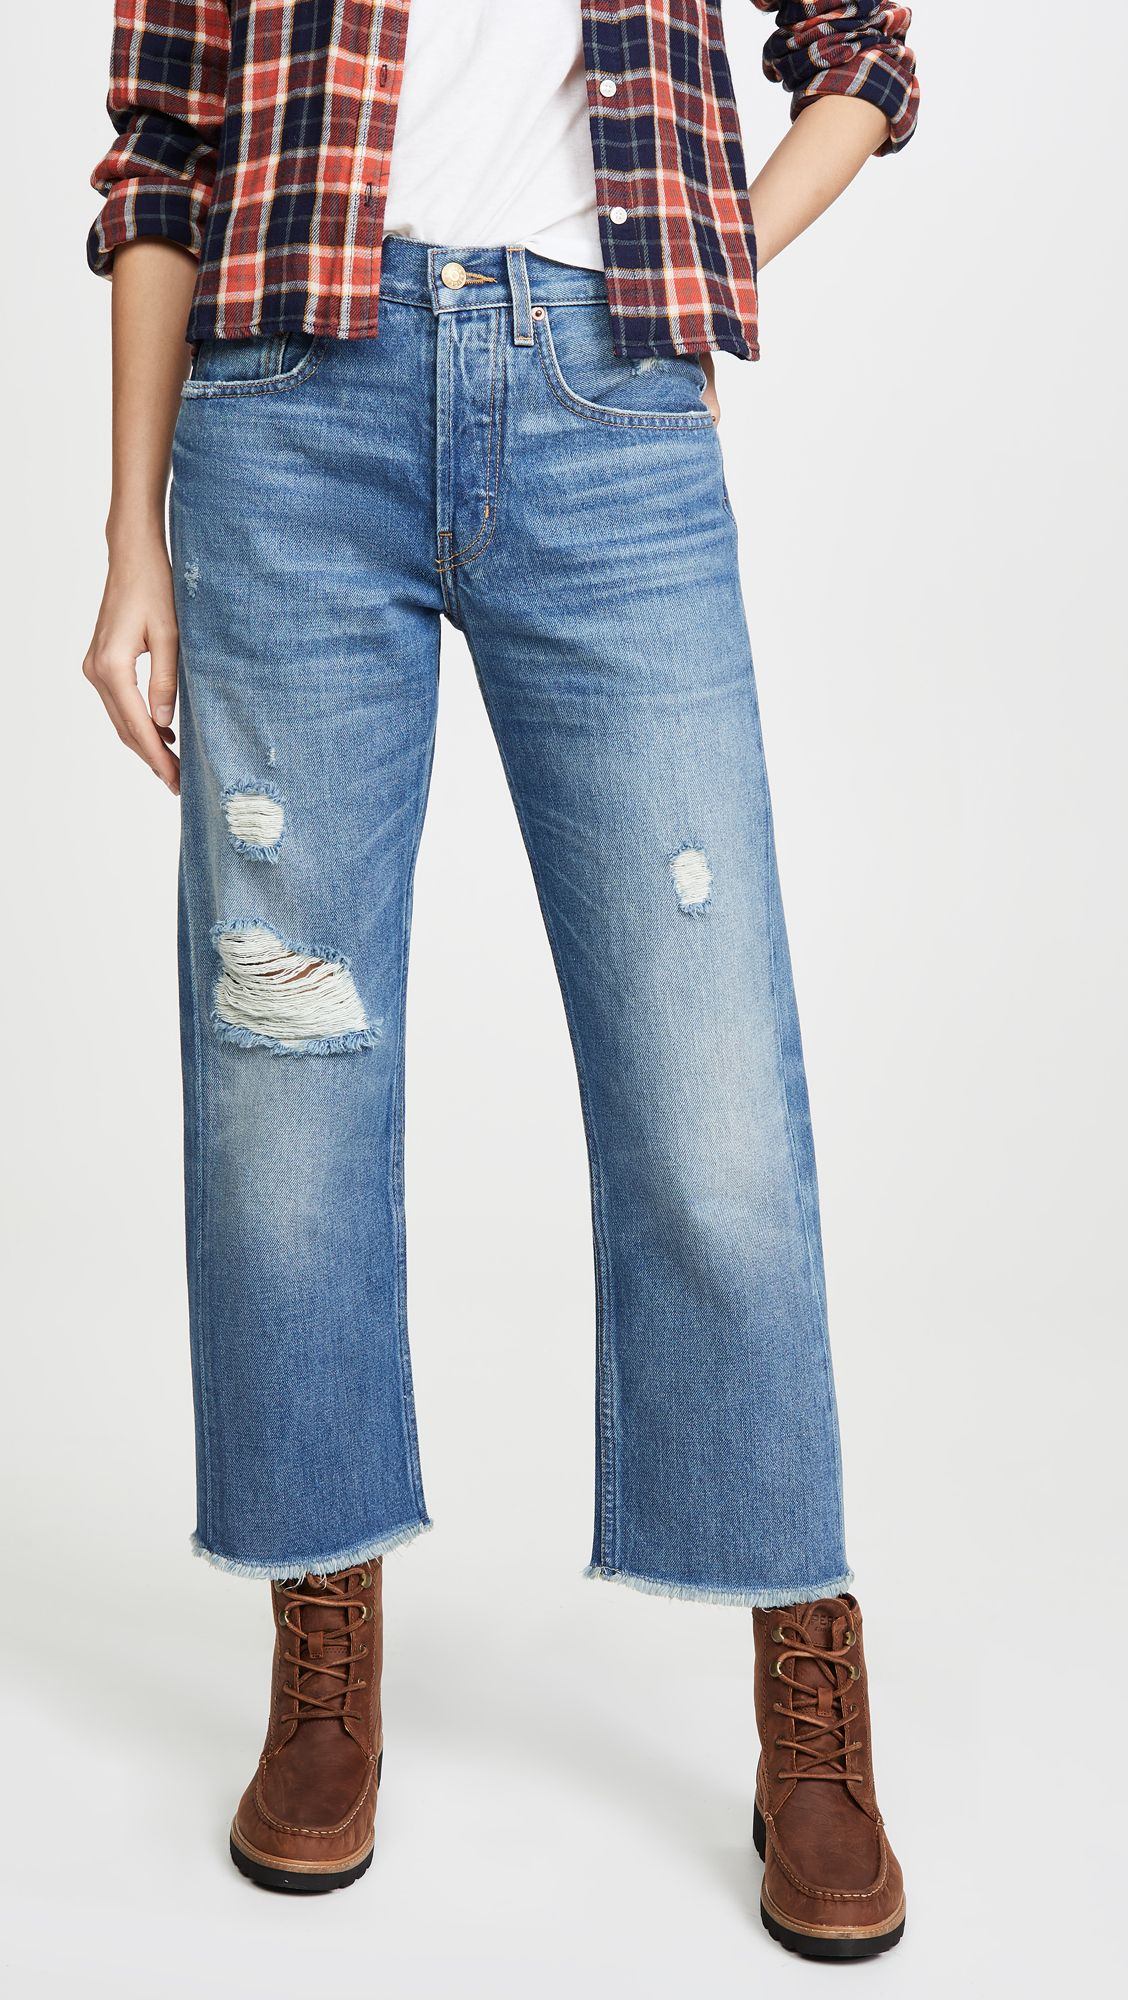 B Sides Marcel Relaxed Straight Jeans Straight Jeans Jeans Distressed Jeans